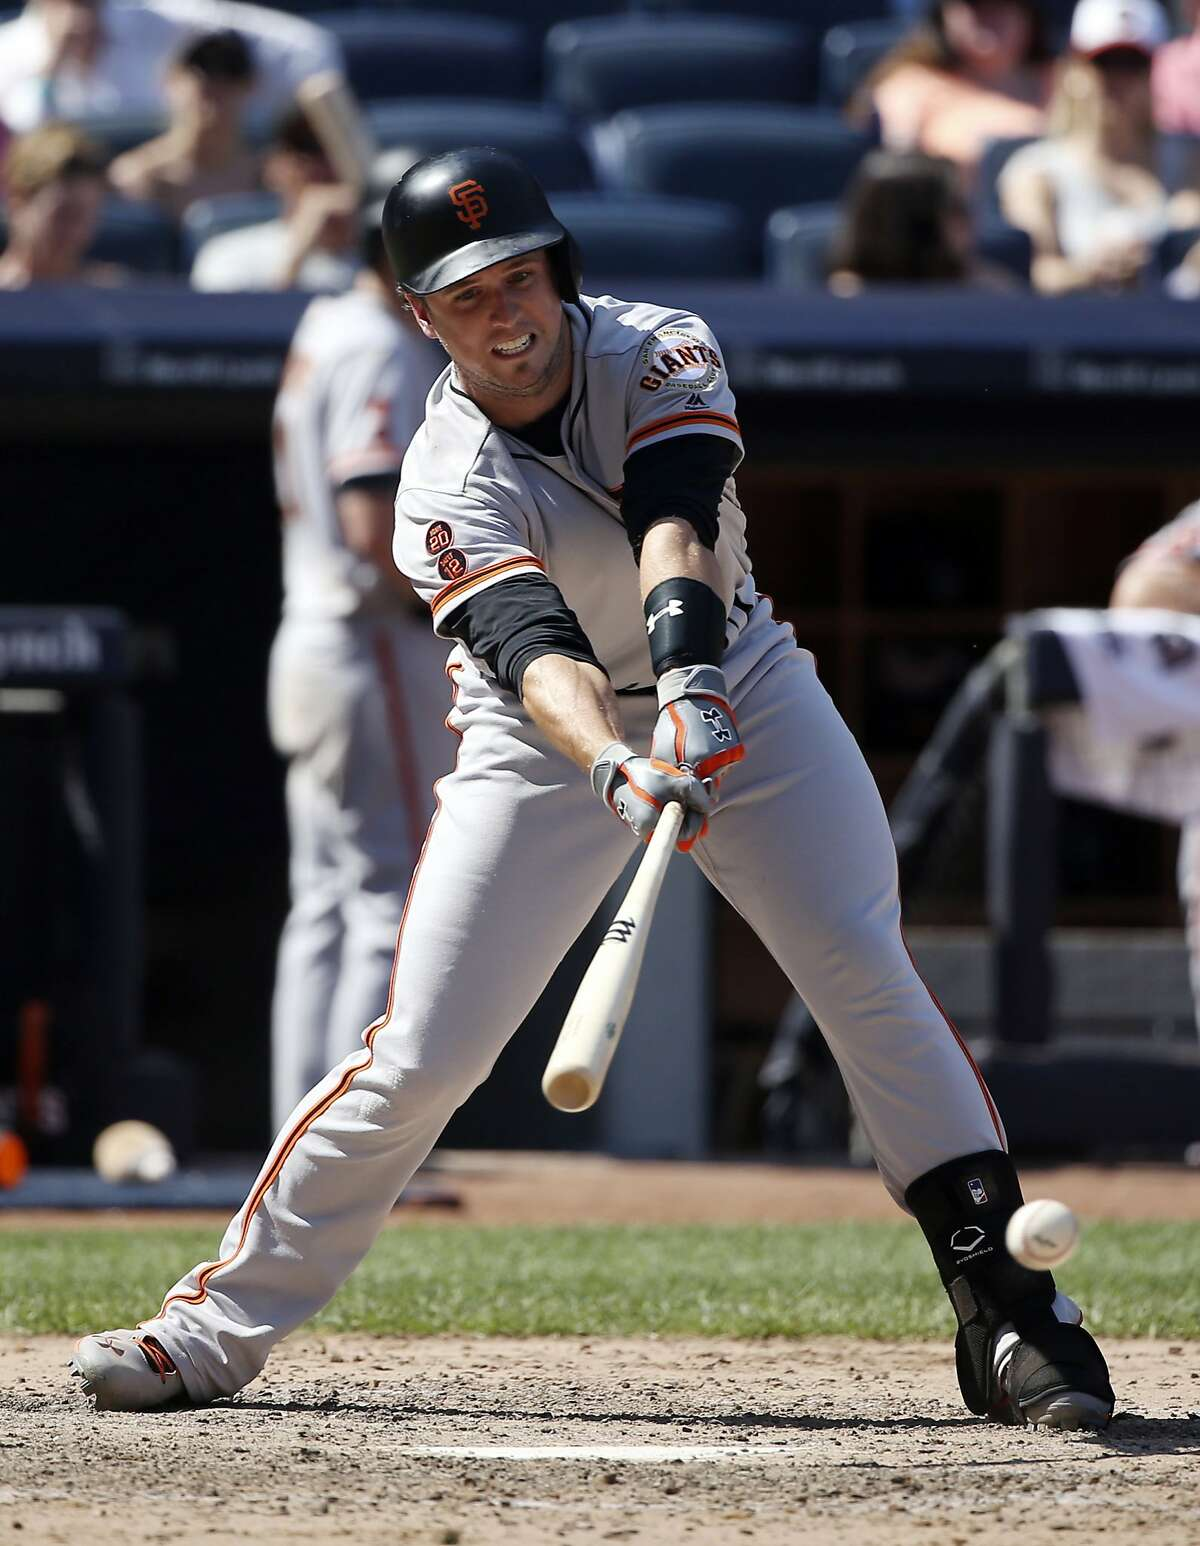 San Francisco Giants' Buster Posey hits a two-run single during the seventh inning of a baseball game against the New York Yankees at Yankee Stadium, Sunday, July 24, 2016, in New York. (AP Photo/Seth Wenig)